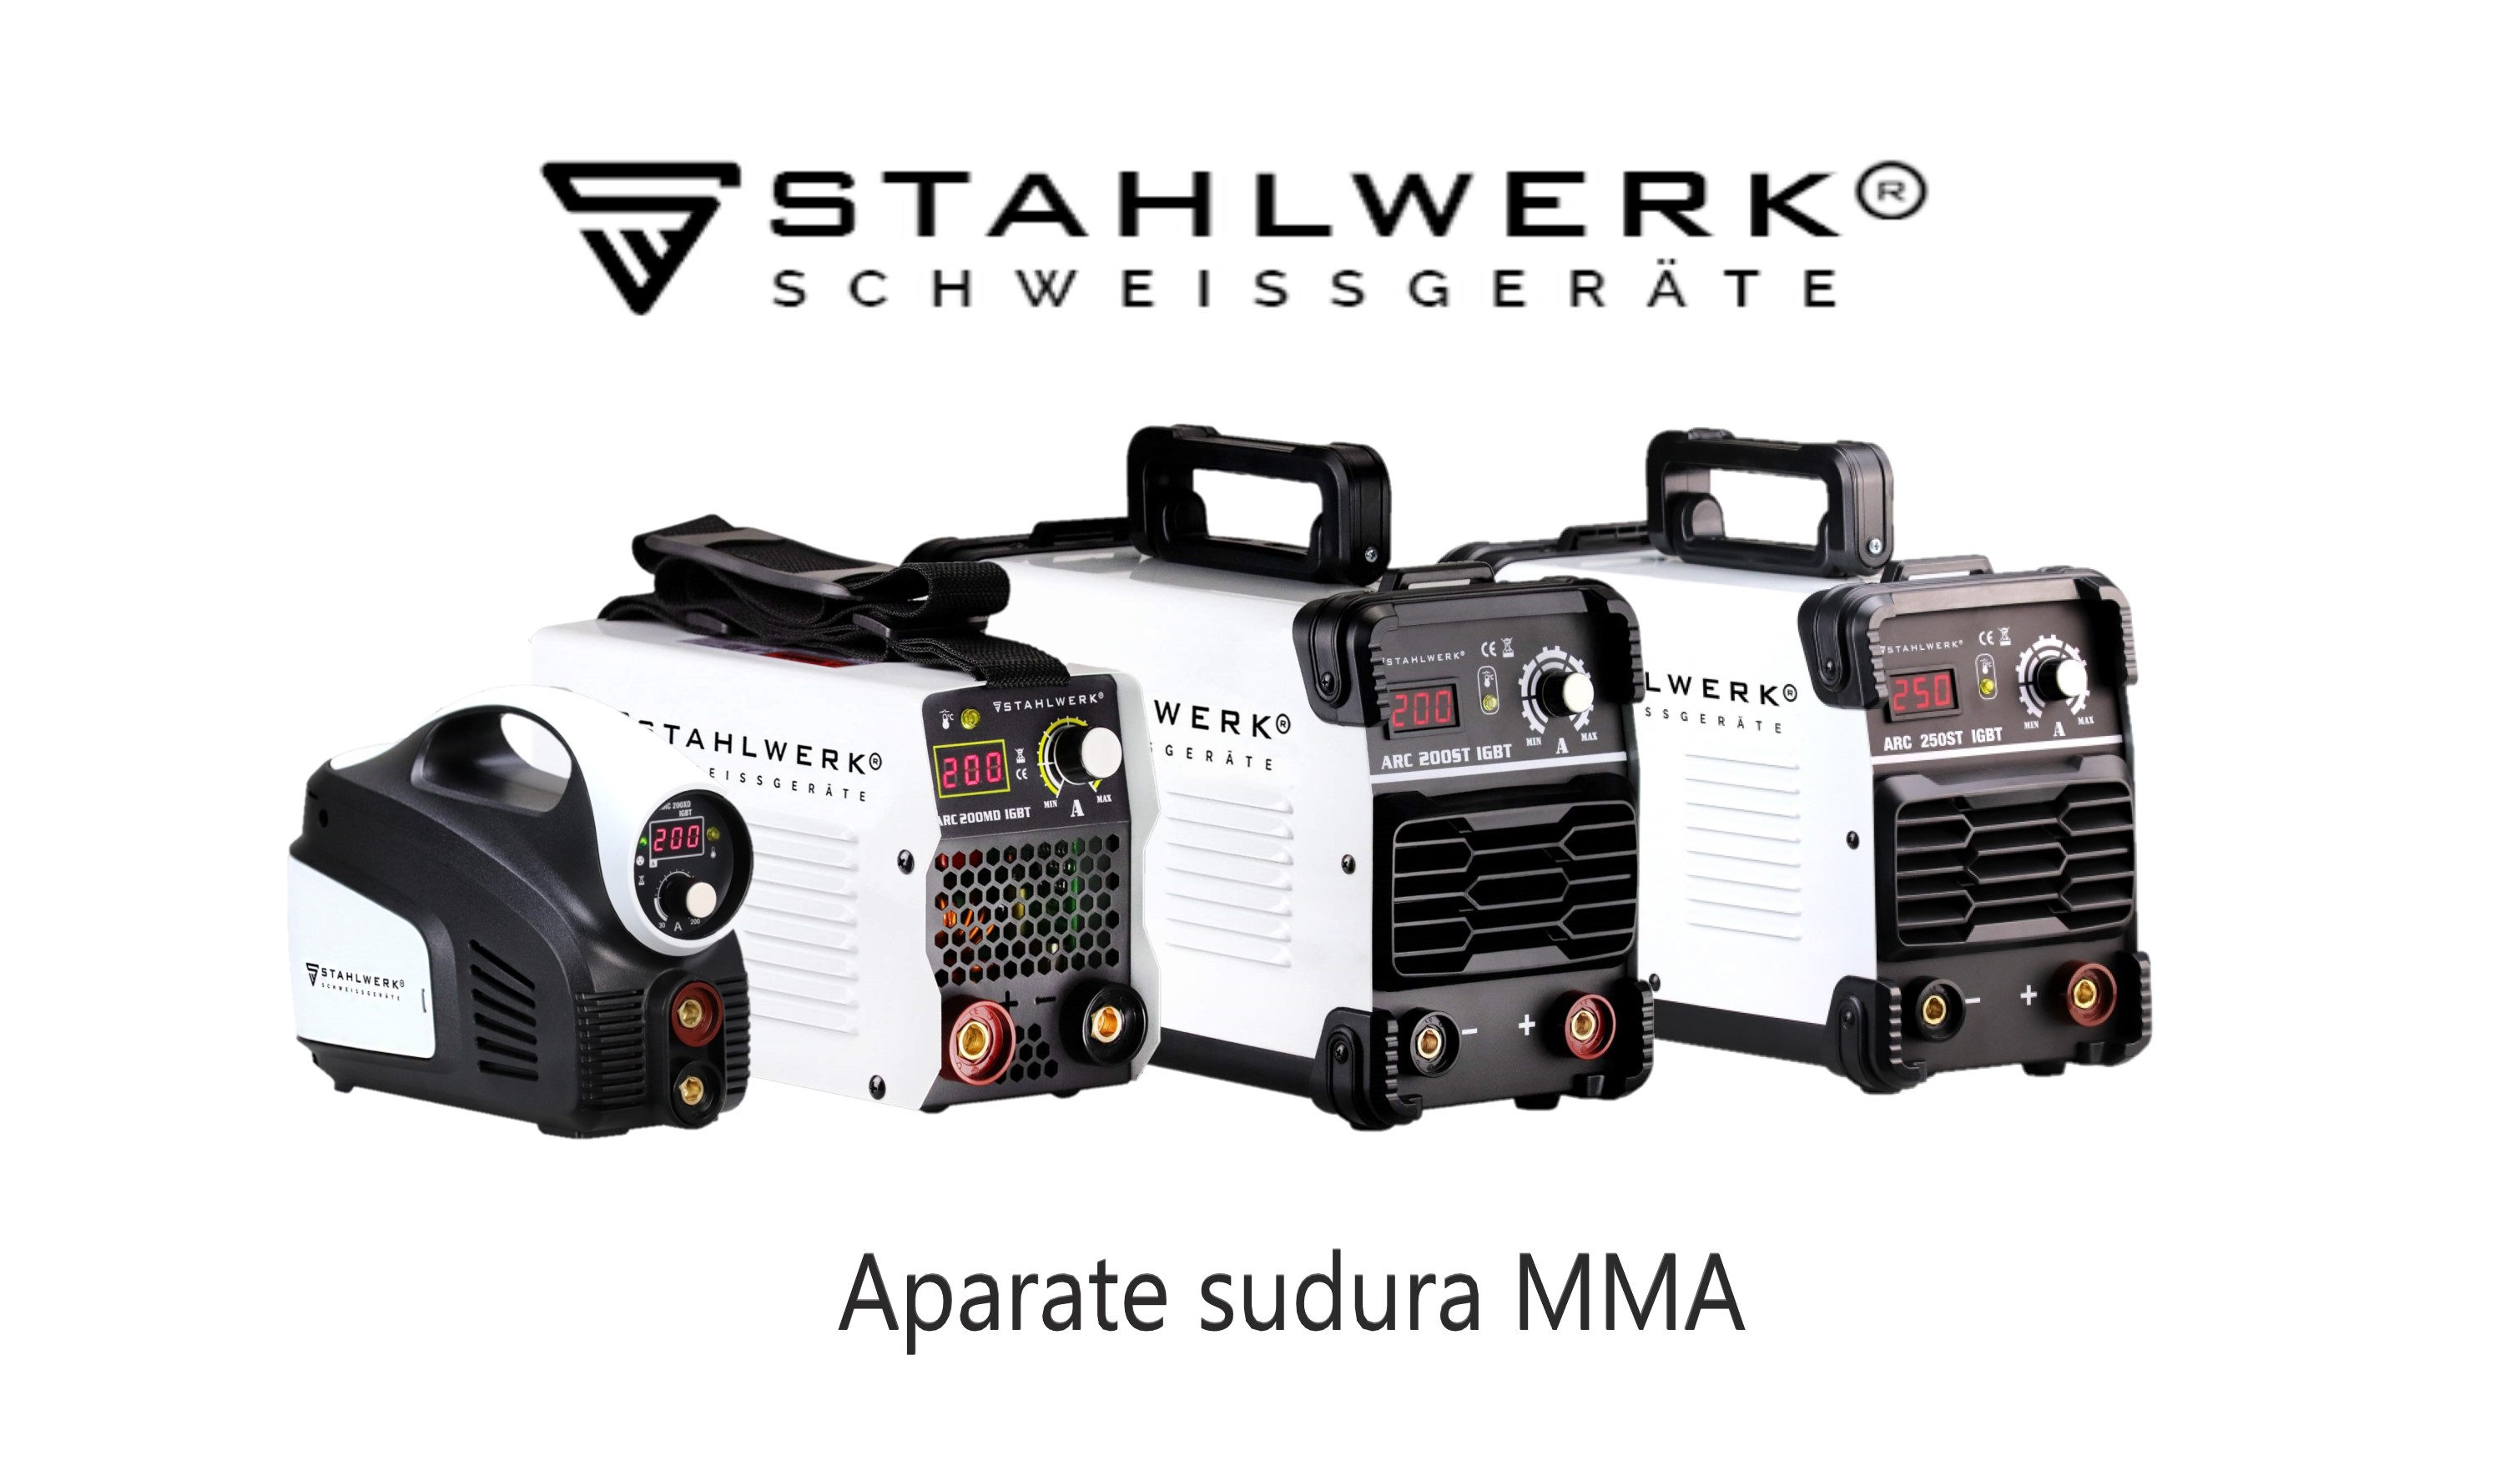 https://www.weldmaster.ro/aparate-sudura-mma